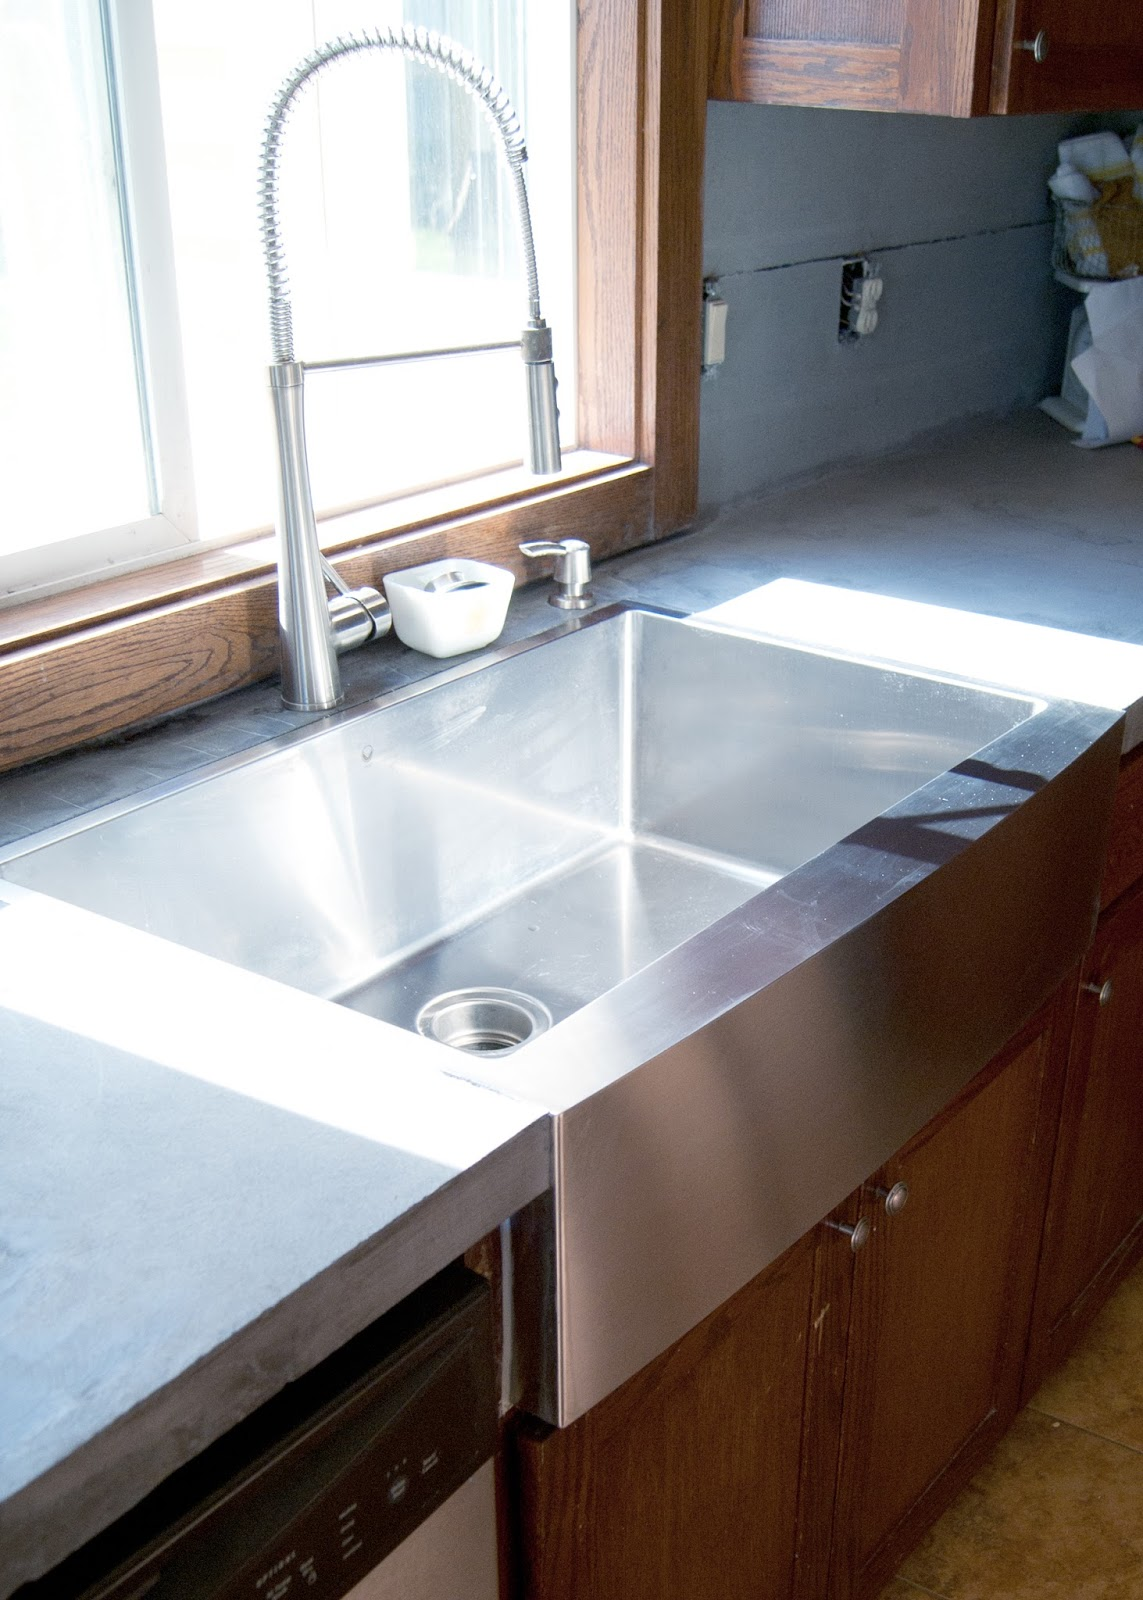 Poured Concrete Kitchen Floor Diy Concrete Counters Poured Over Laminate Averie Lane Diy